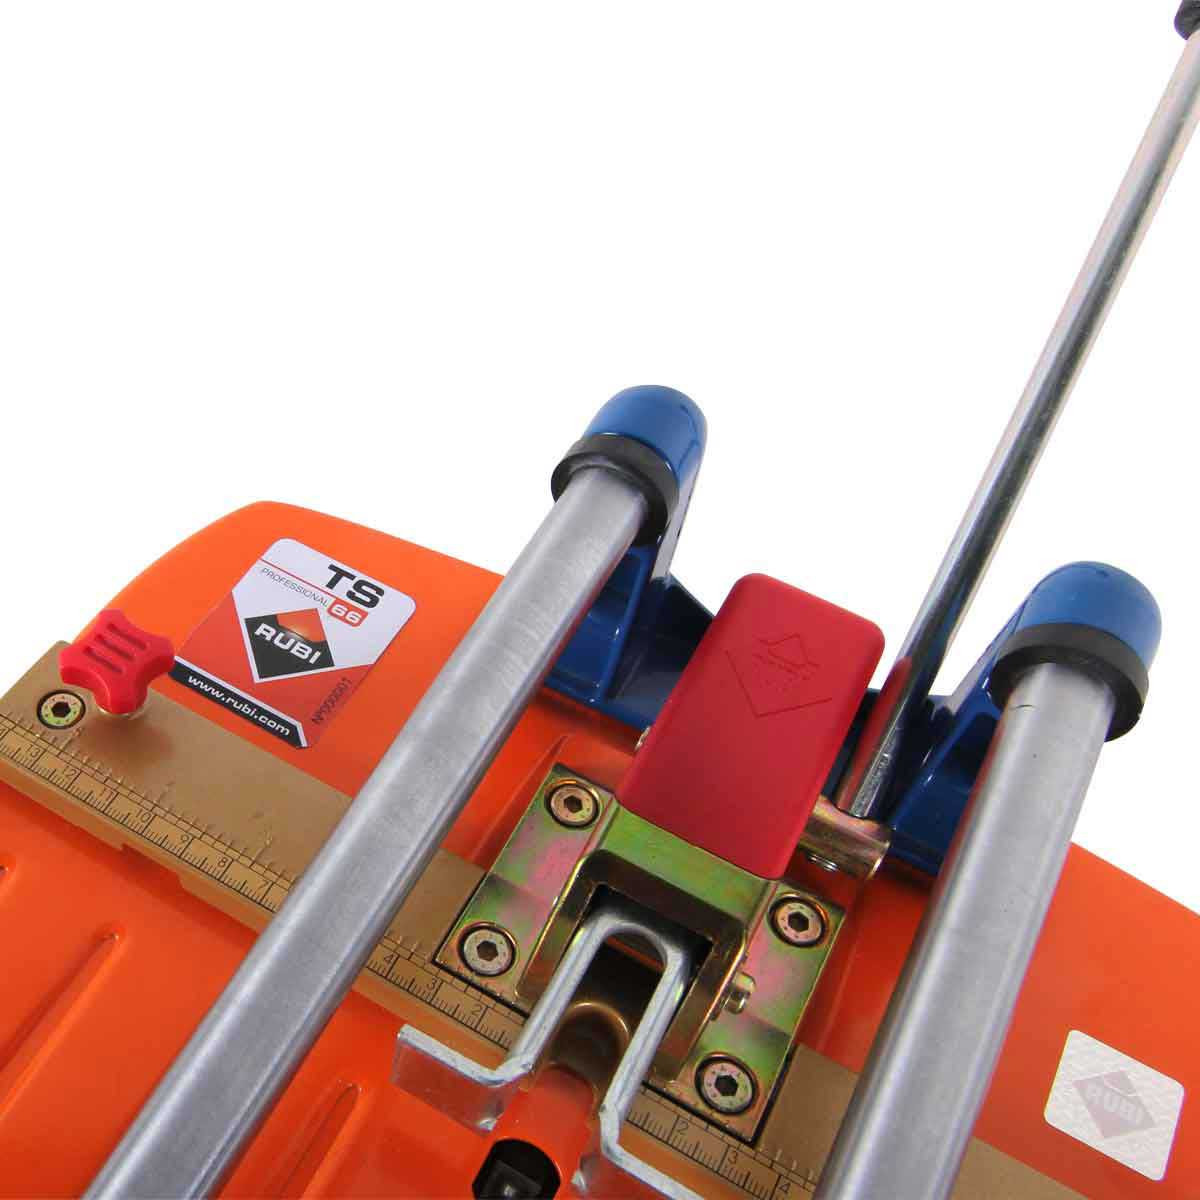 Rubi TS tile cutter guide